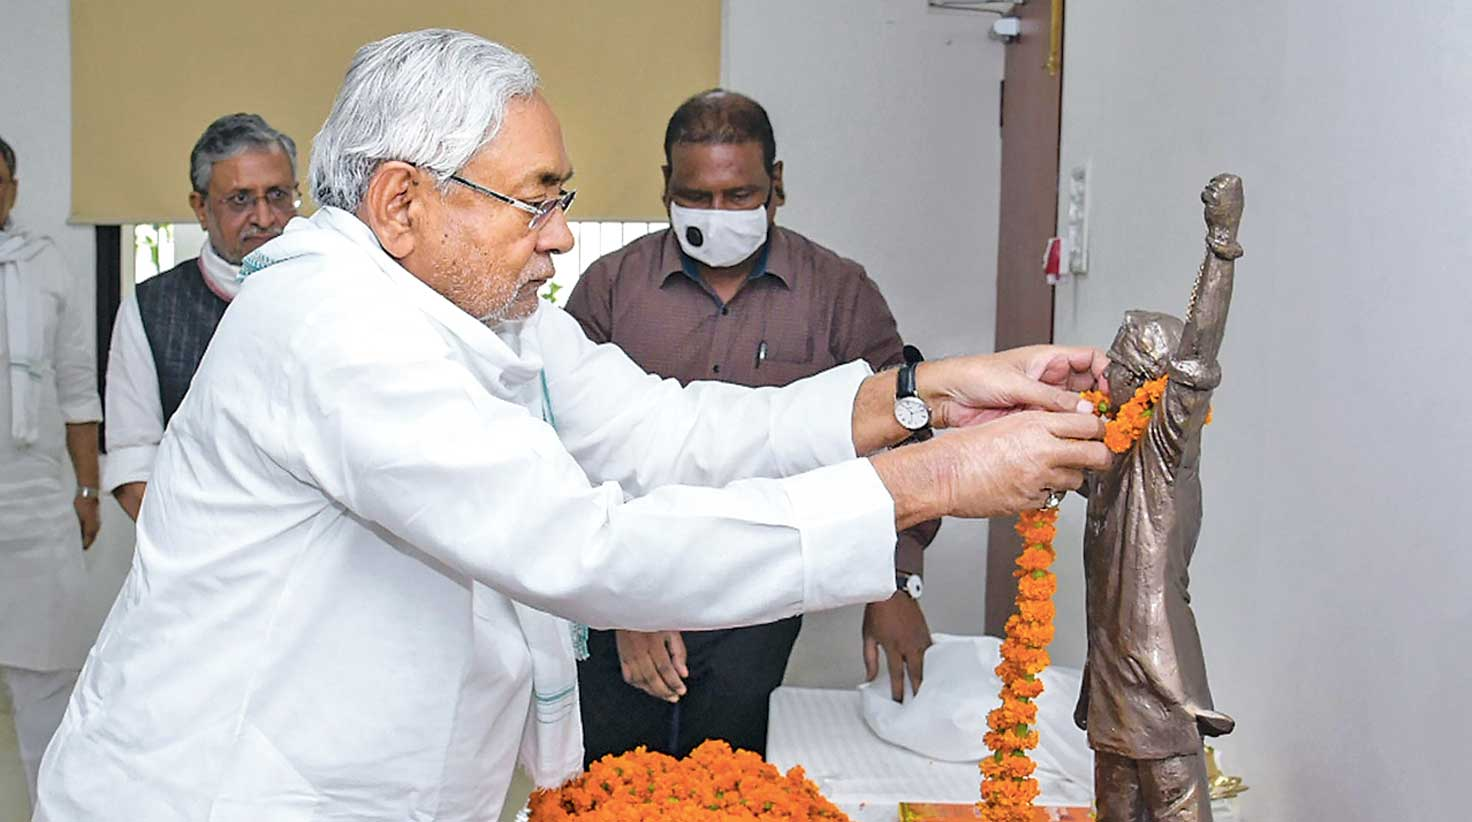 Bihar chief minister Nitish Kumar garlands the prototype of a statue of George Fernandes in Patna on the socialist leader's 90th birth anniversary on Wednesday. The chief minister unveiled through video conferencing the life-size statue of Fernandes in Muzaffarpur, the constituency which the stalwart had represented several times in the Lok Sabha.